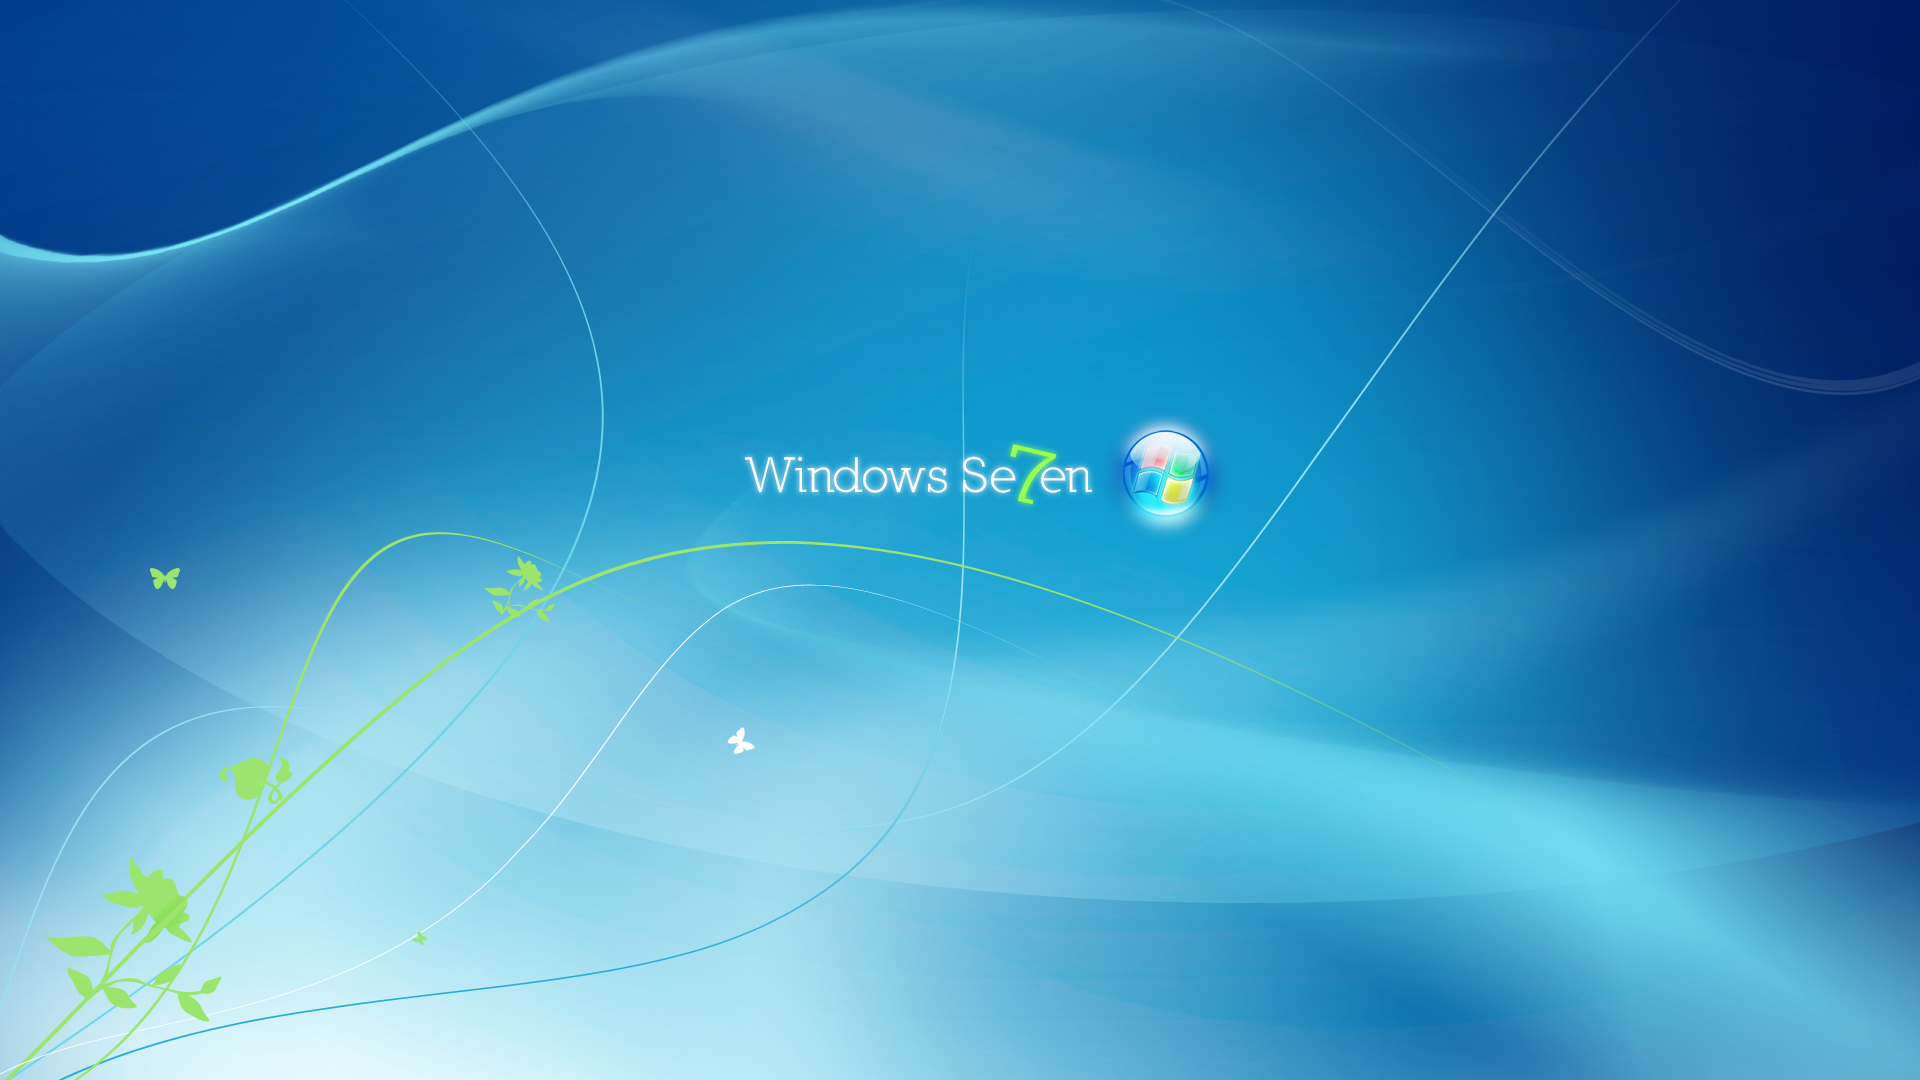 Windows Seven HD 1080p Wallpapers HD Wallpapers 1920x1080